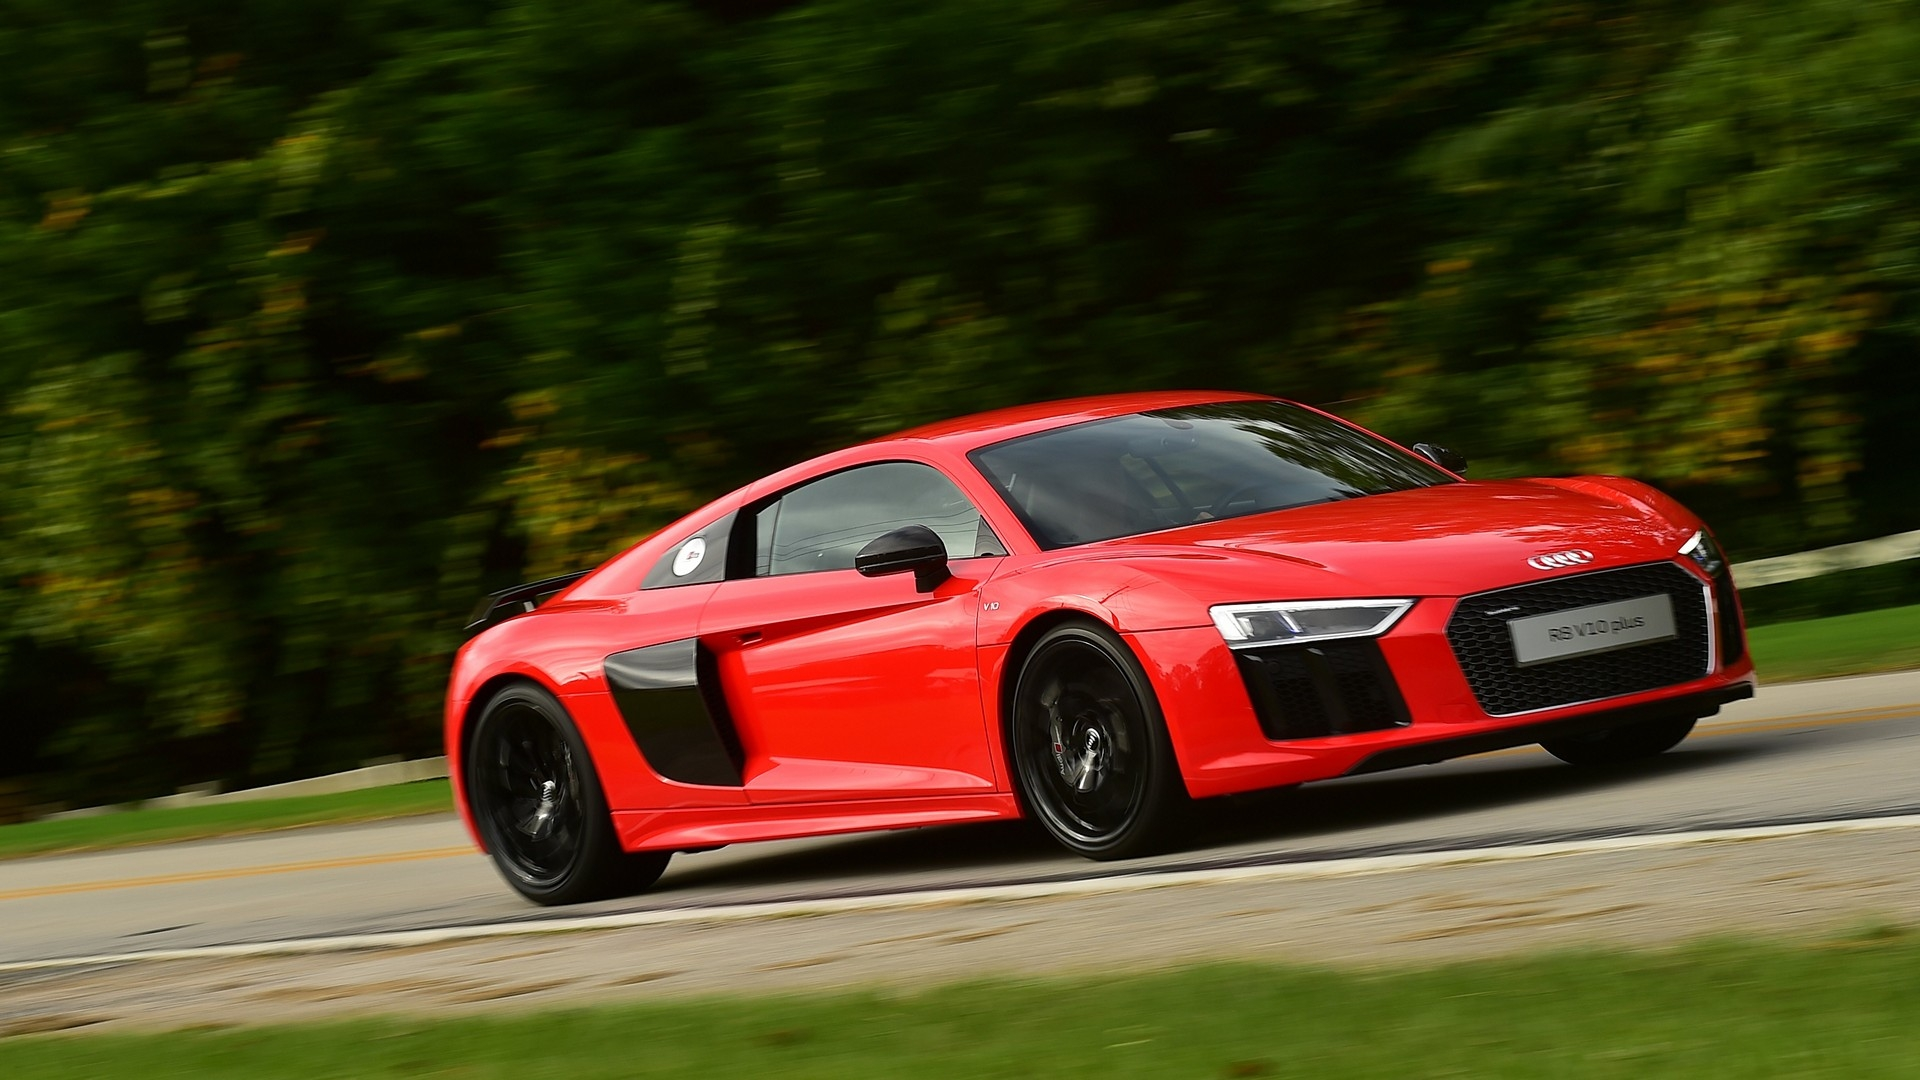 audi-r-sport-rain-race-Audi-Of-America-Announces-Pricing-For-The-All-New-R-The-wallpaper-wpc5802359